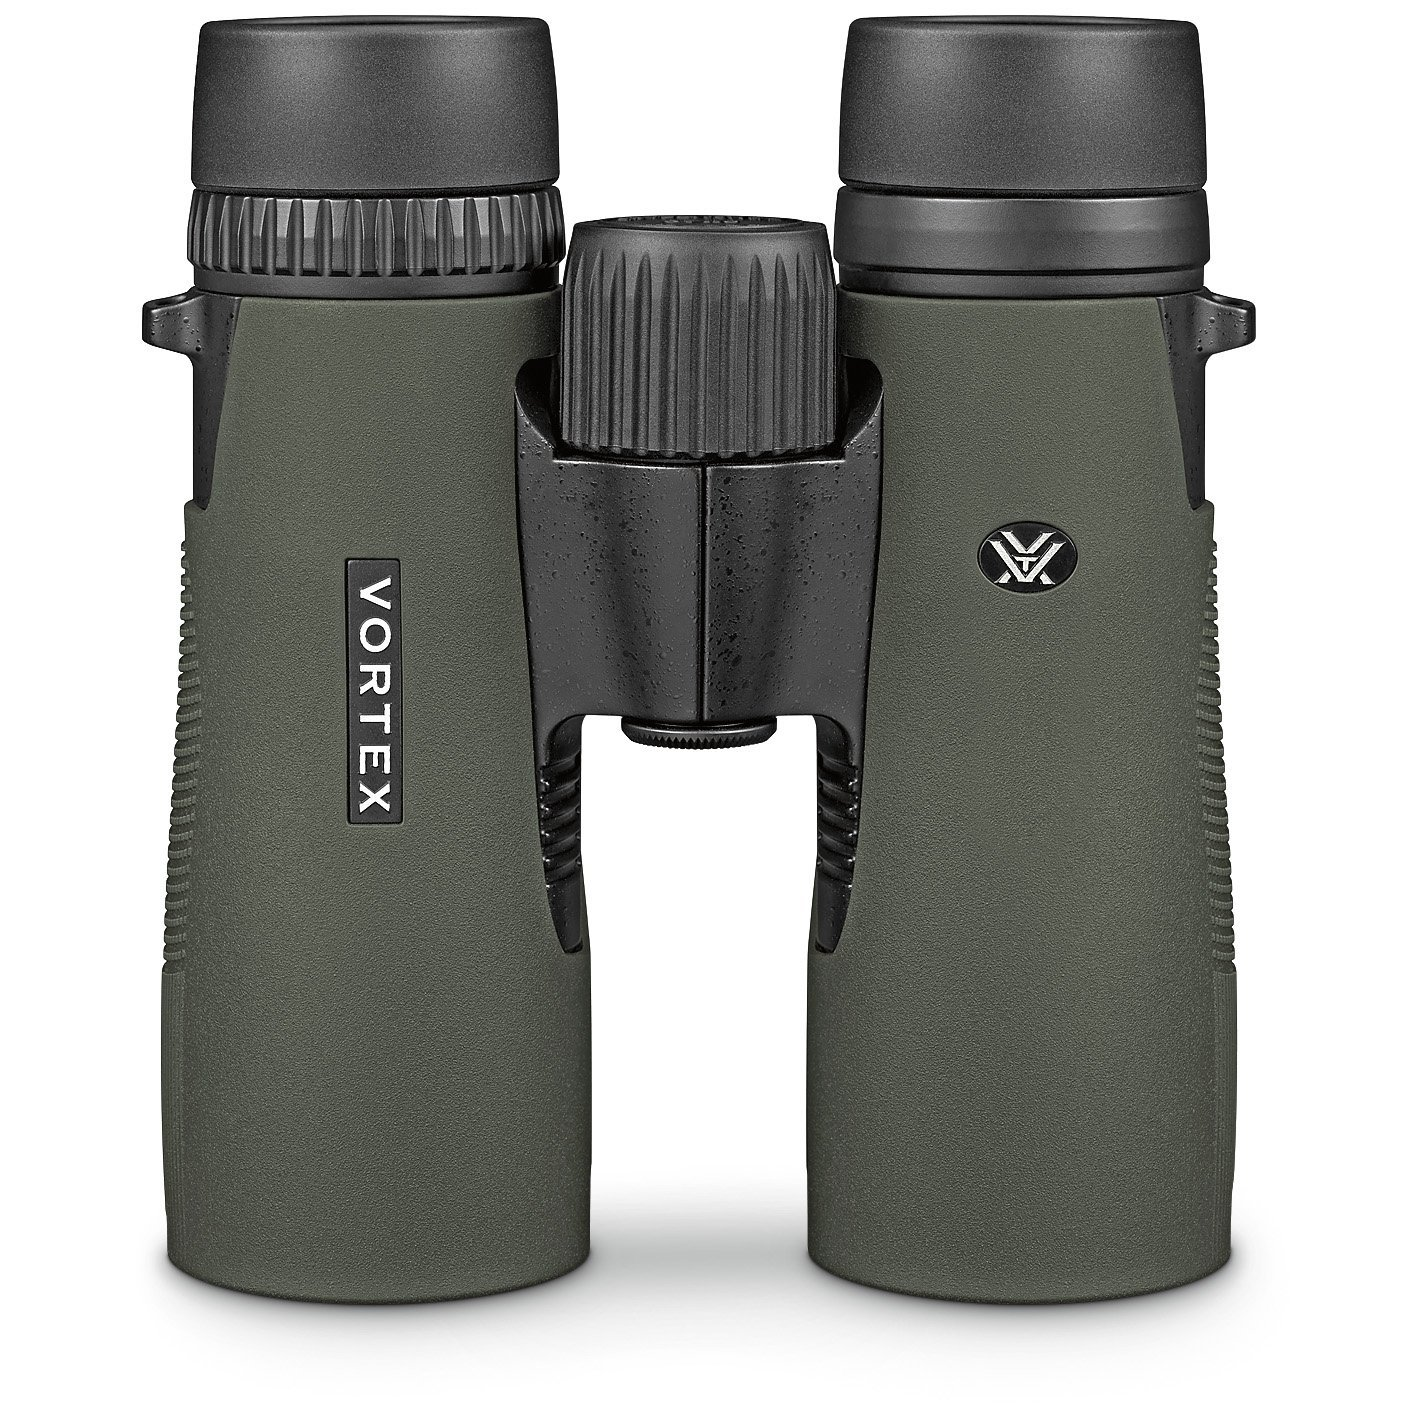 Vortex Optics New 2016 Diamondback 10x42 Roof Prism Binoculars